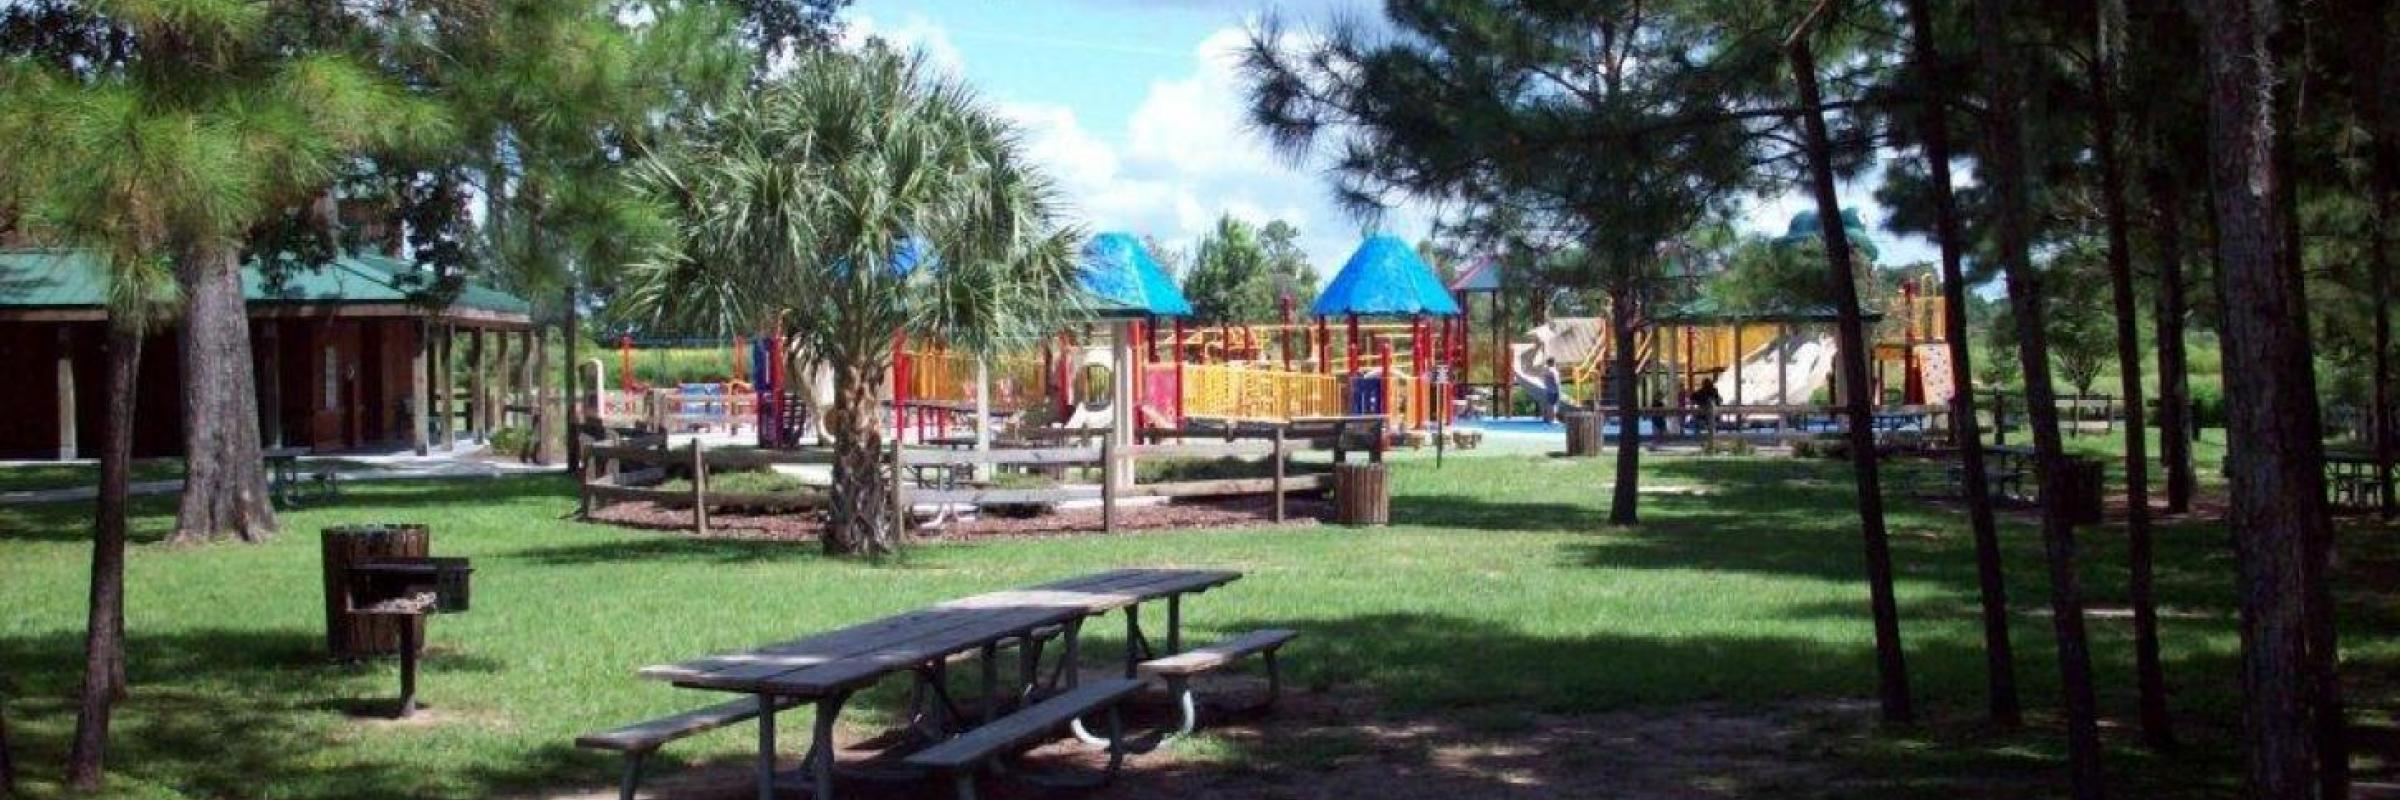 panorama of playground and picnic benches